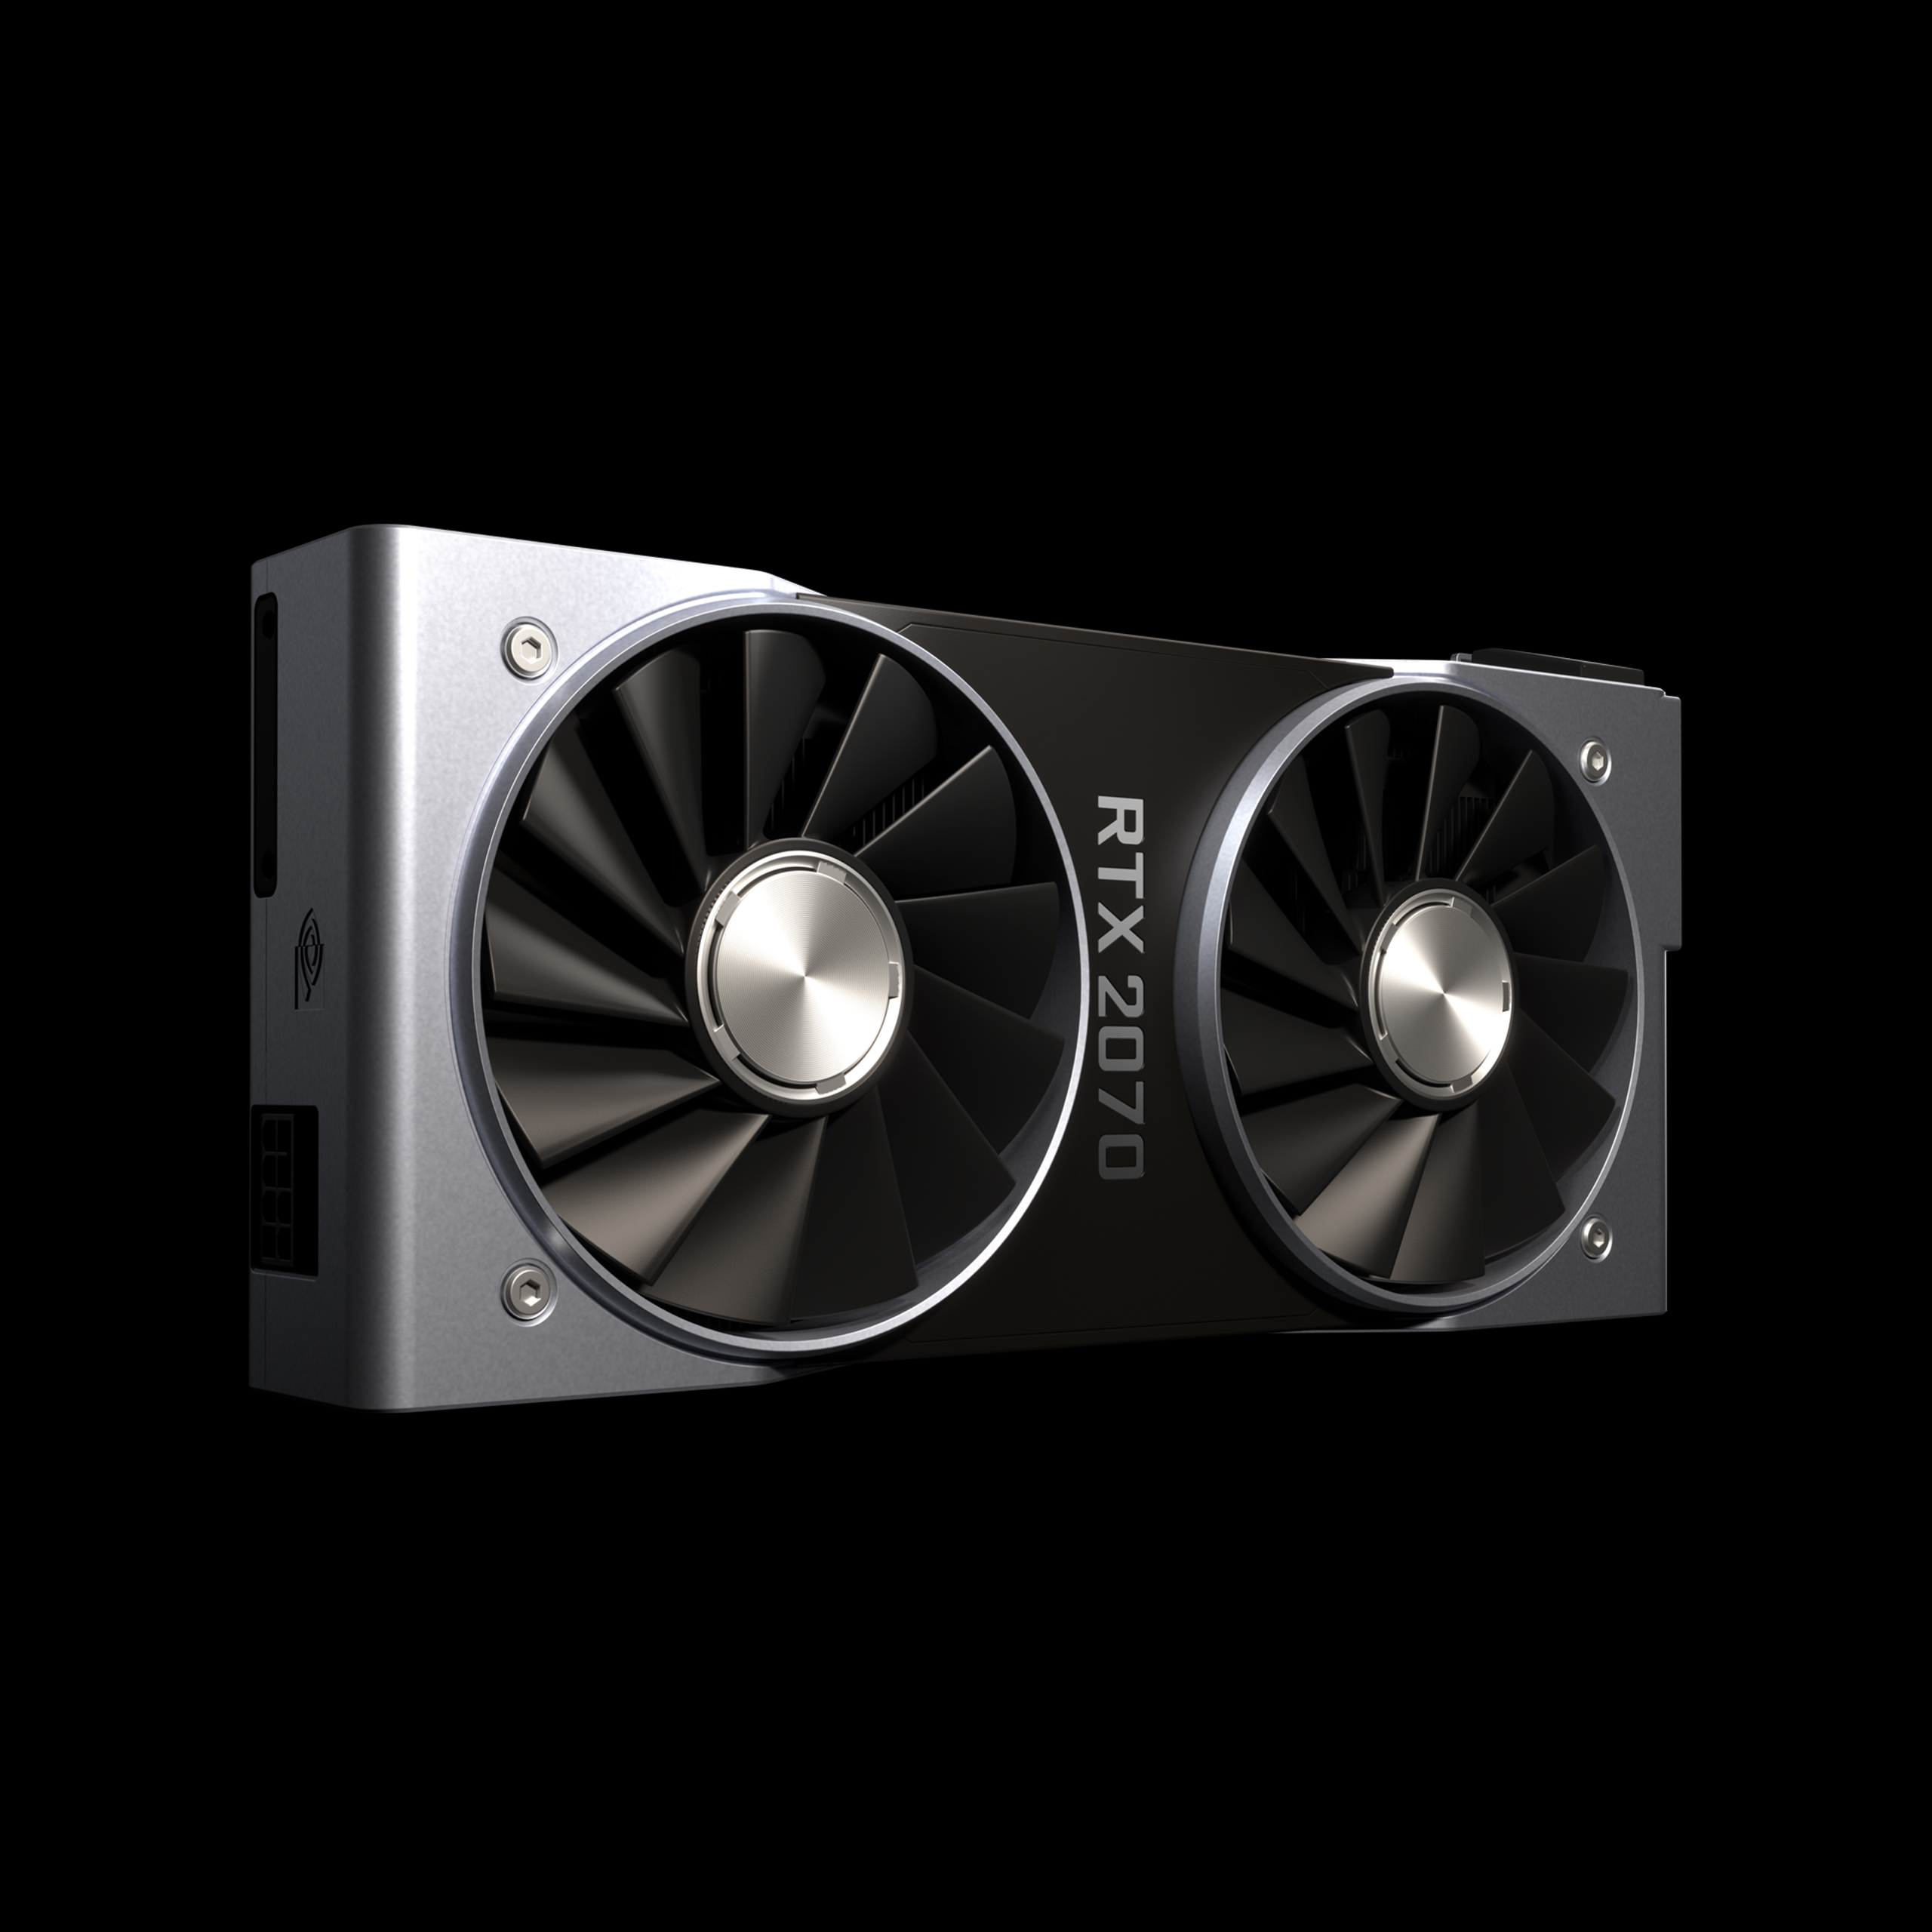 GeForce RTX 2070 Graphics Card | NVIDIA